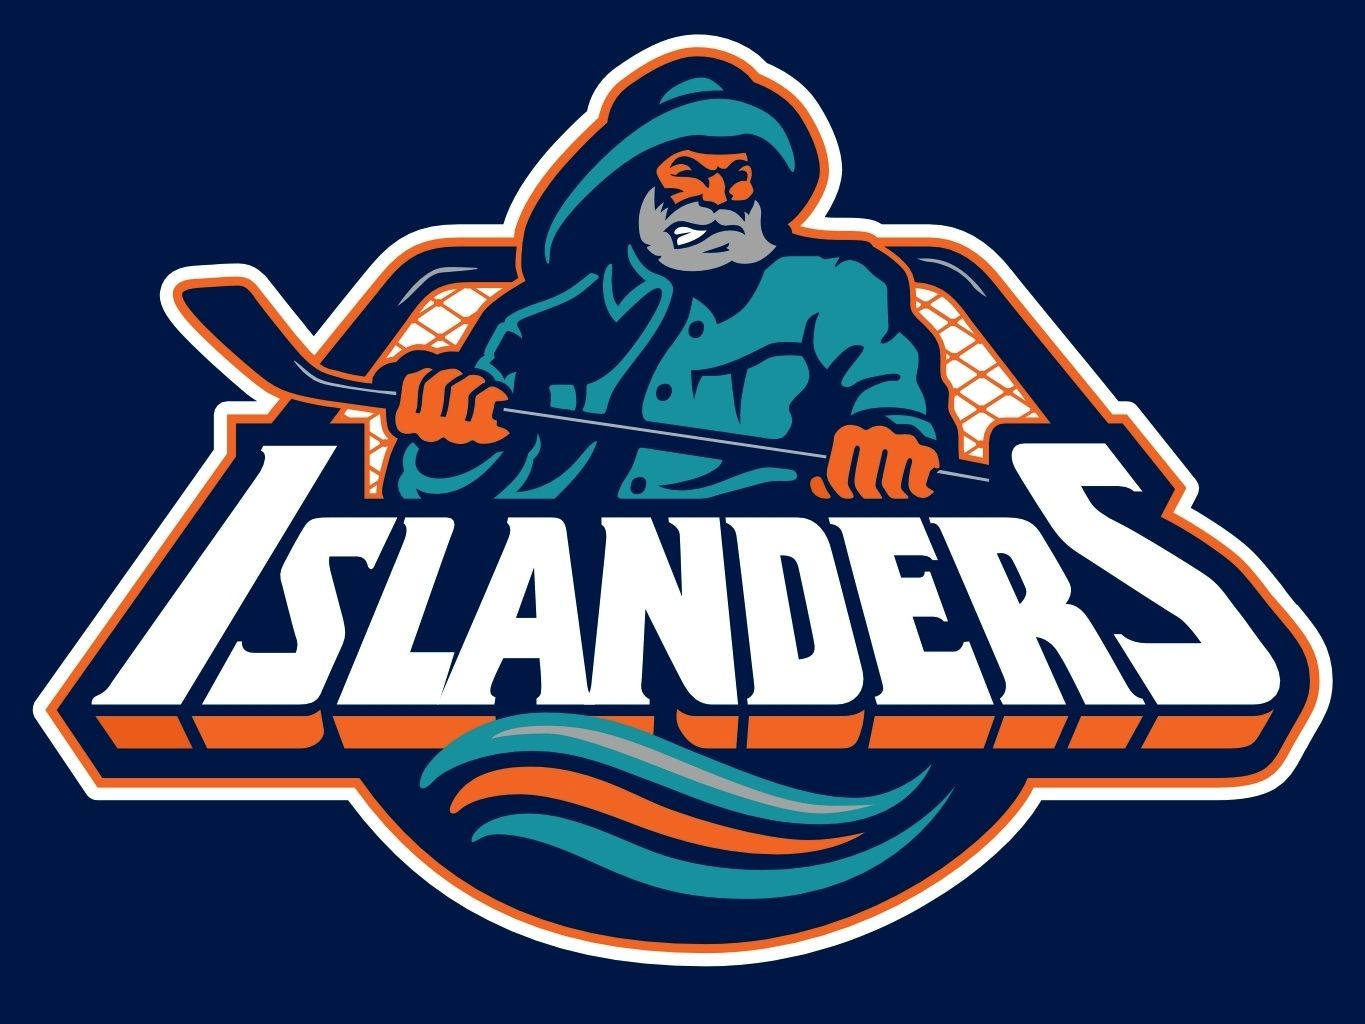 sneakers for cheap 1e8d2 7fc10 Islanders Logo | GPBC Logo Concept & Design Elements | Nhl ...